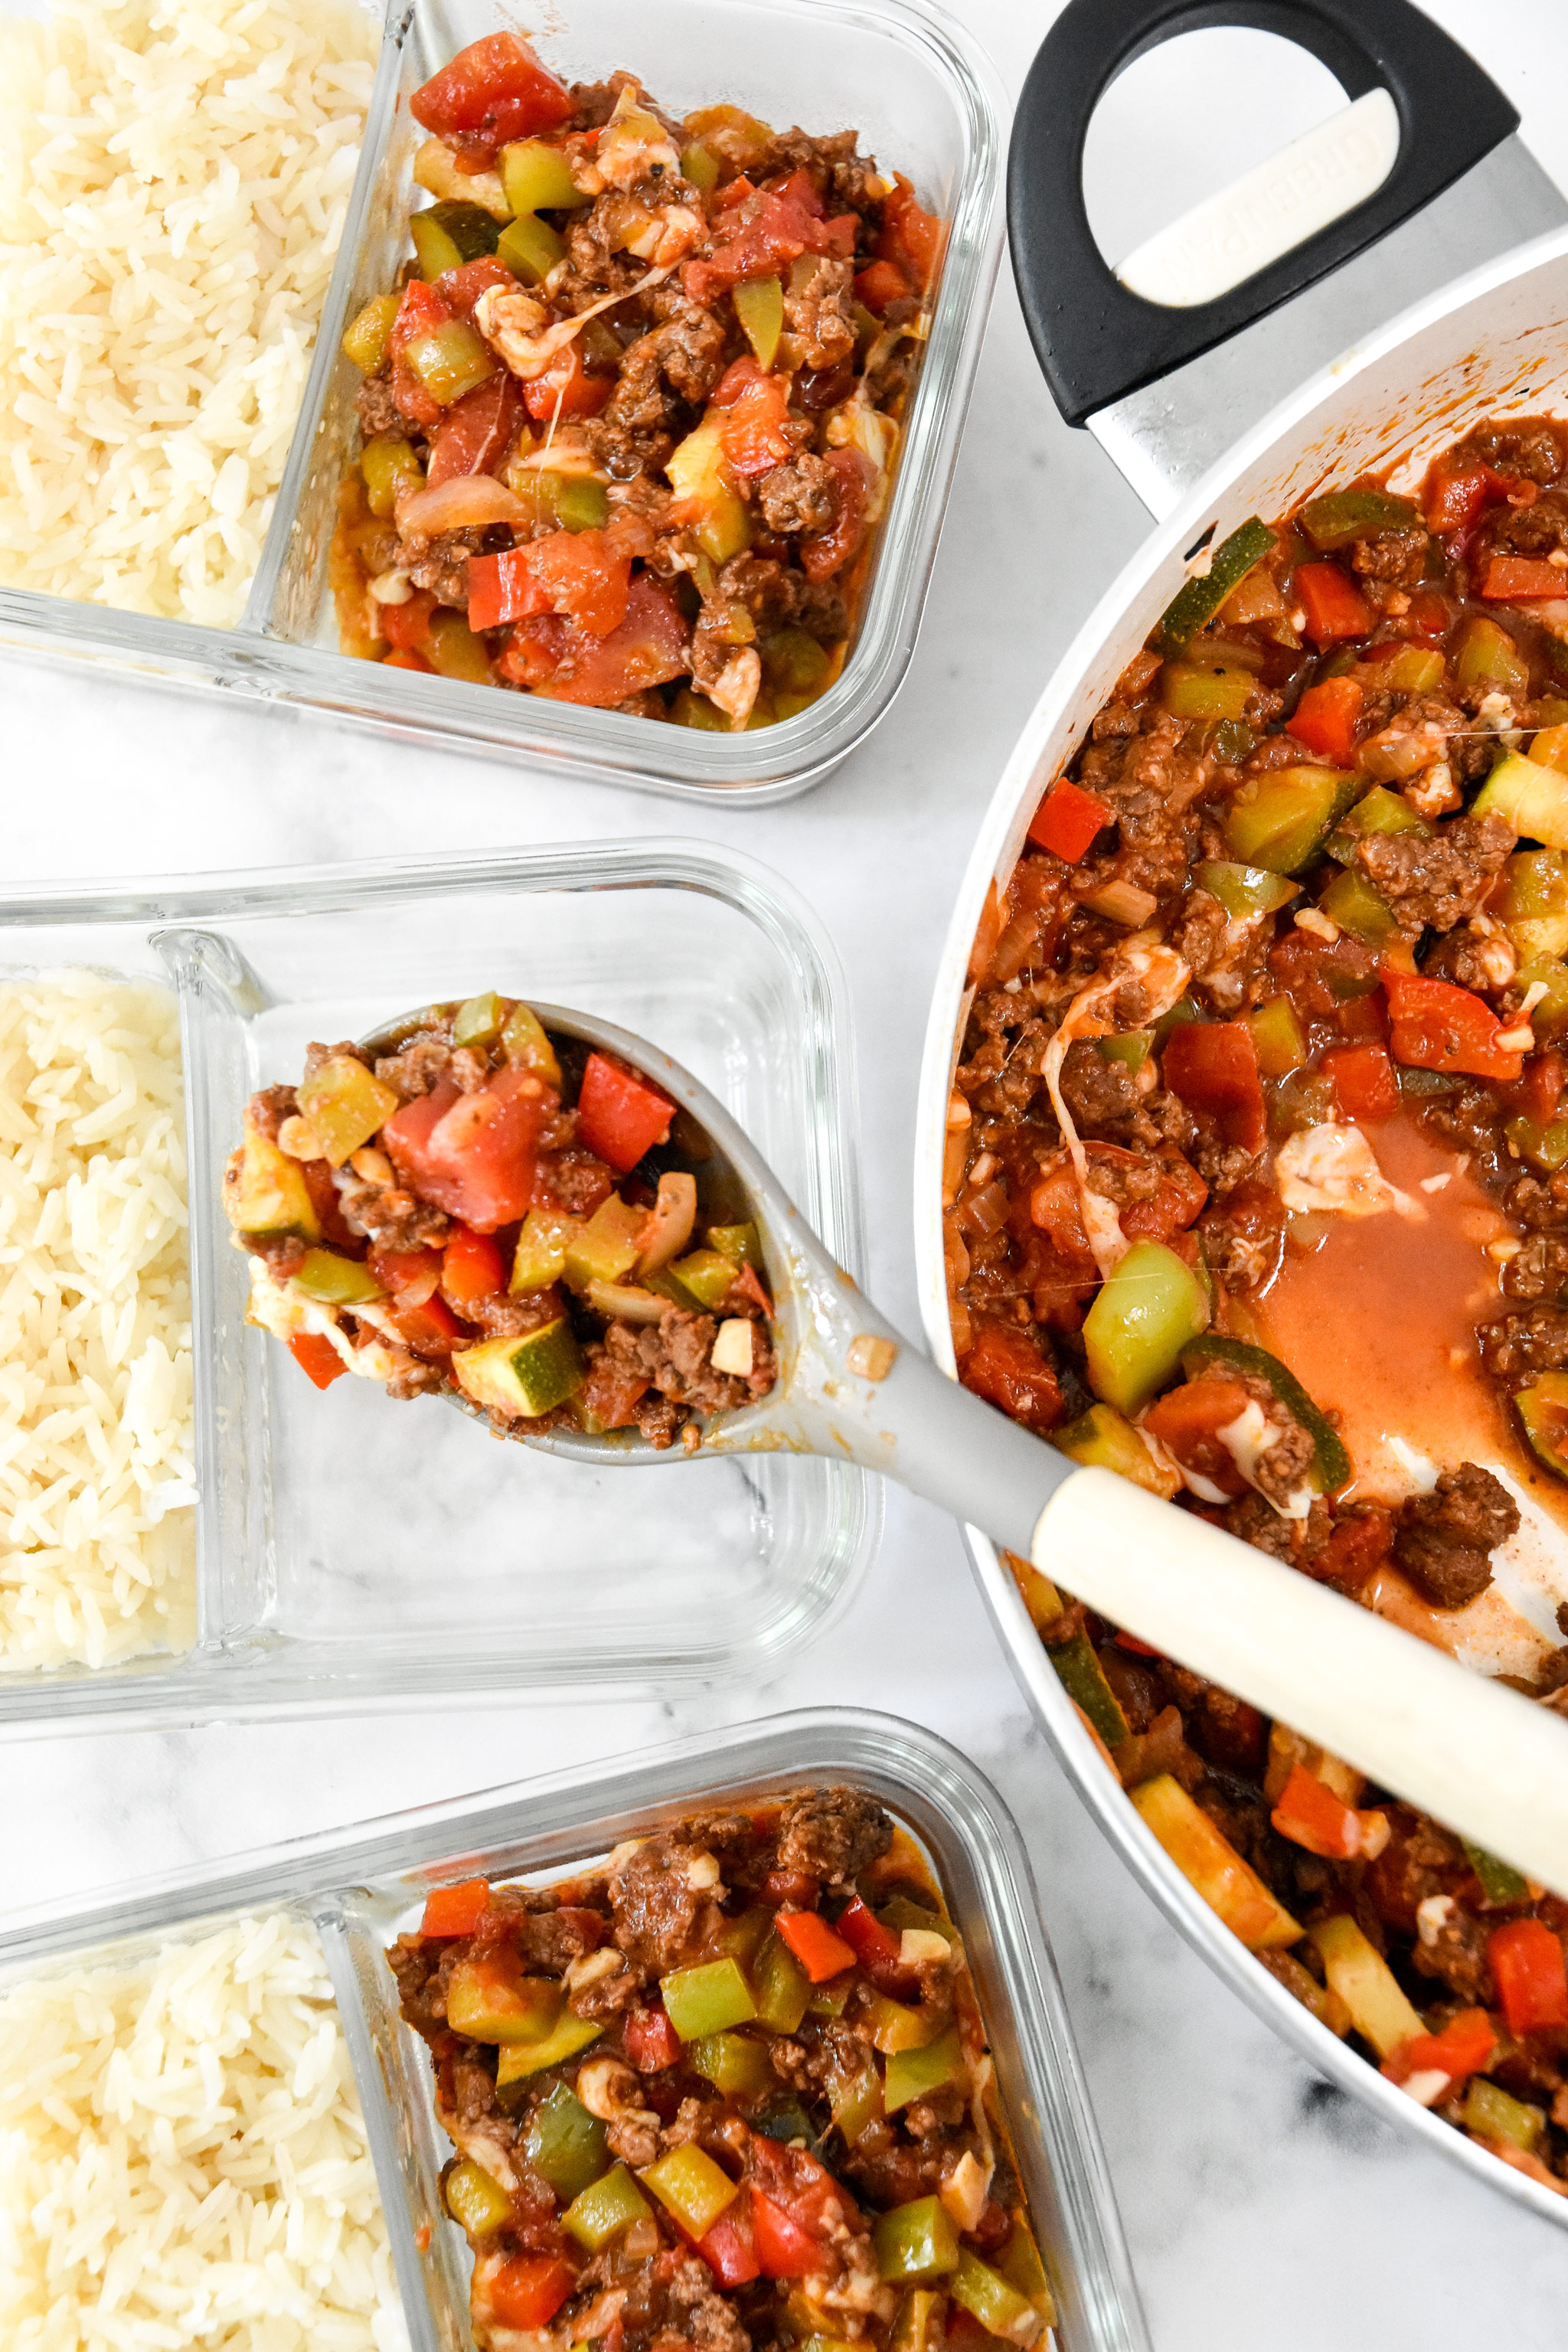 spooning unstuffed pepper mixture into the glass meal prep containers.